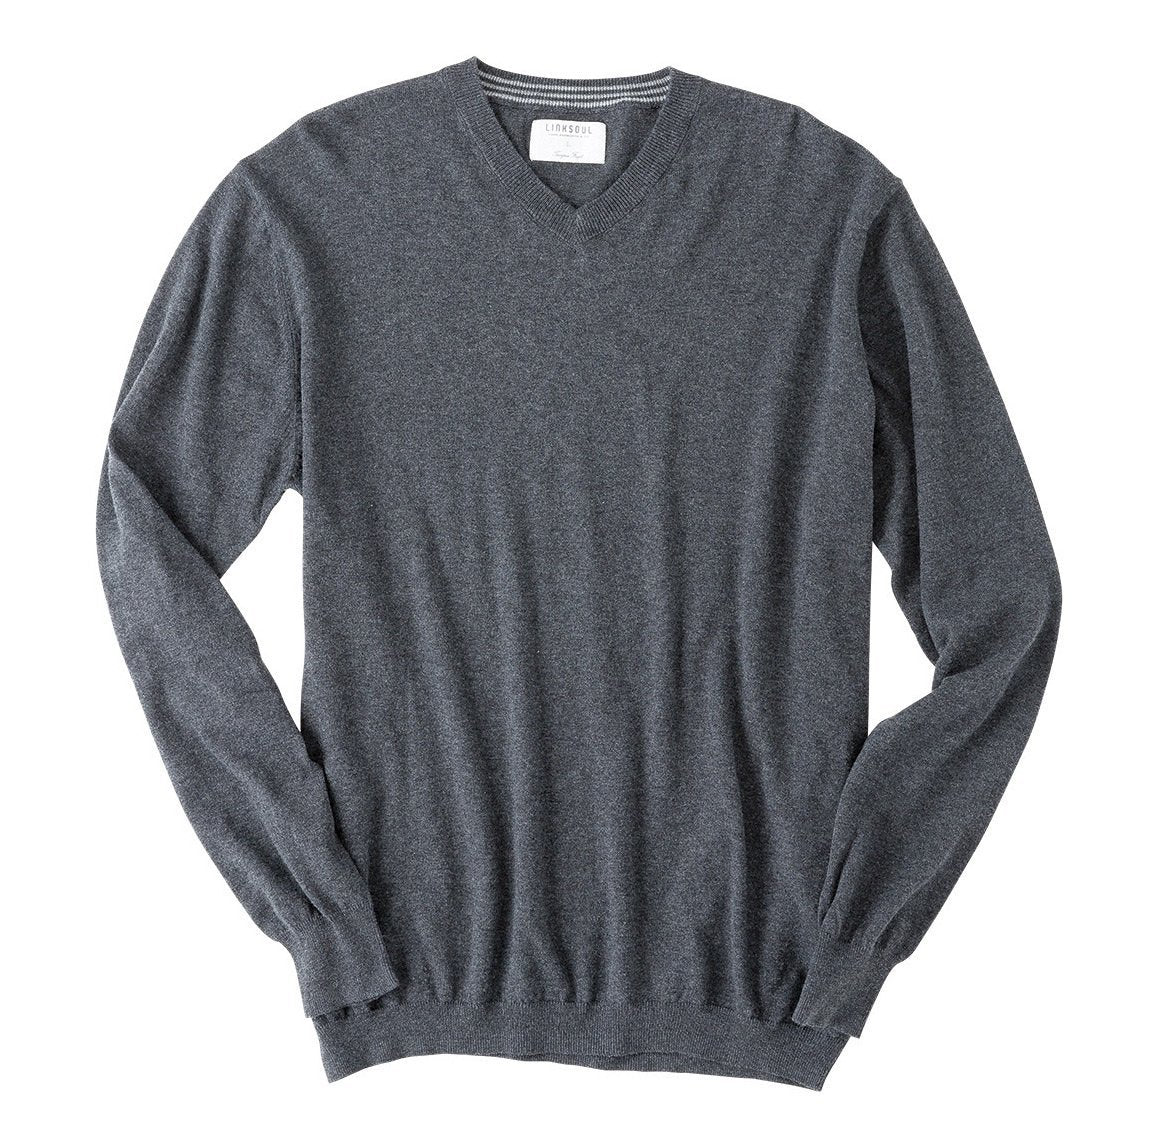 LIGHT WEIGHT COTTON-CASHMERE V-NECK SWEATER